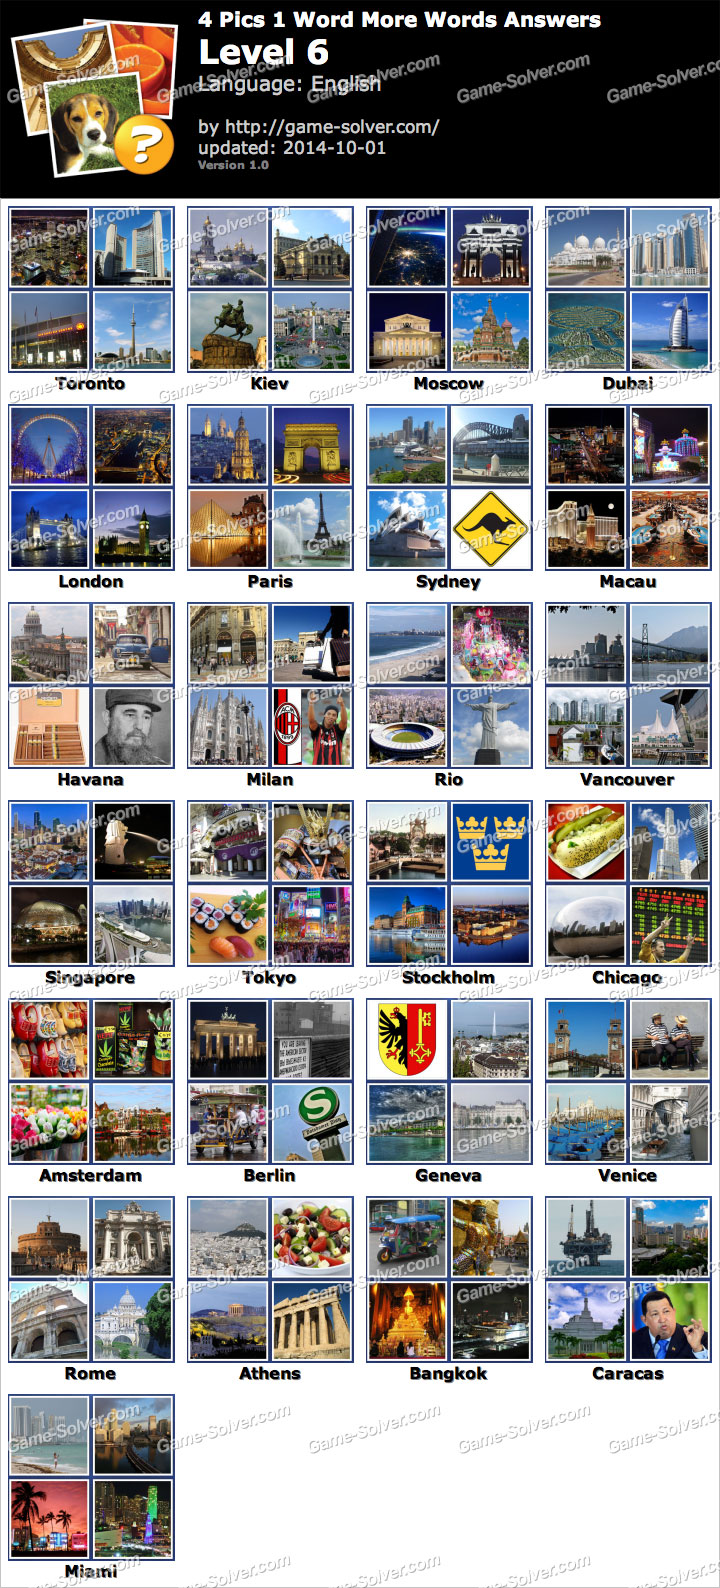 pics 1 word cheats 7 letters 4 pics 1 word 4 letters answers walkthrough cheats html 4